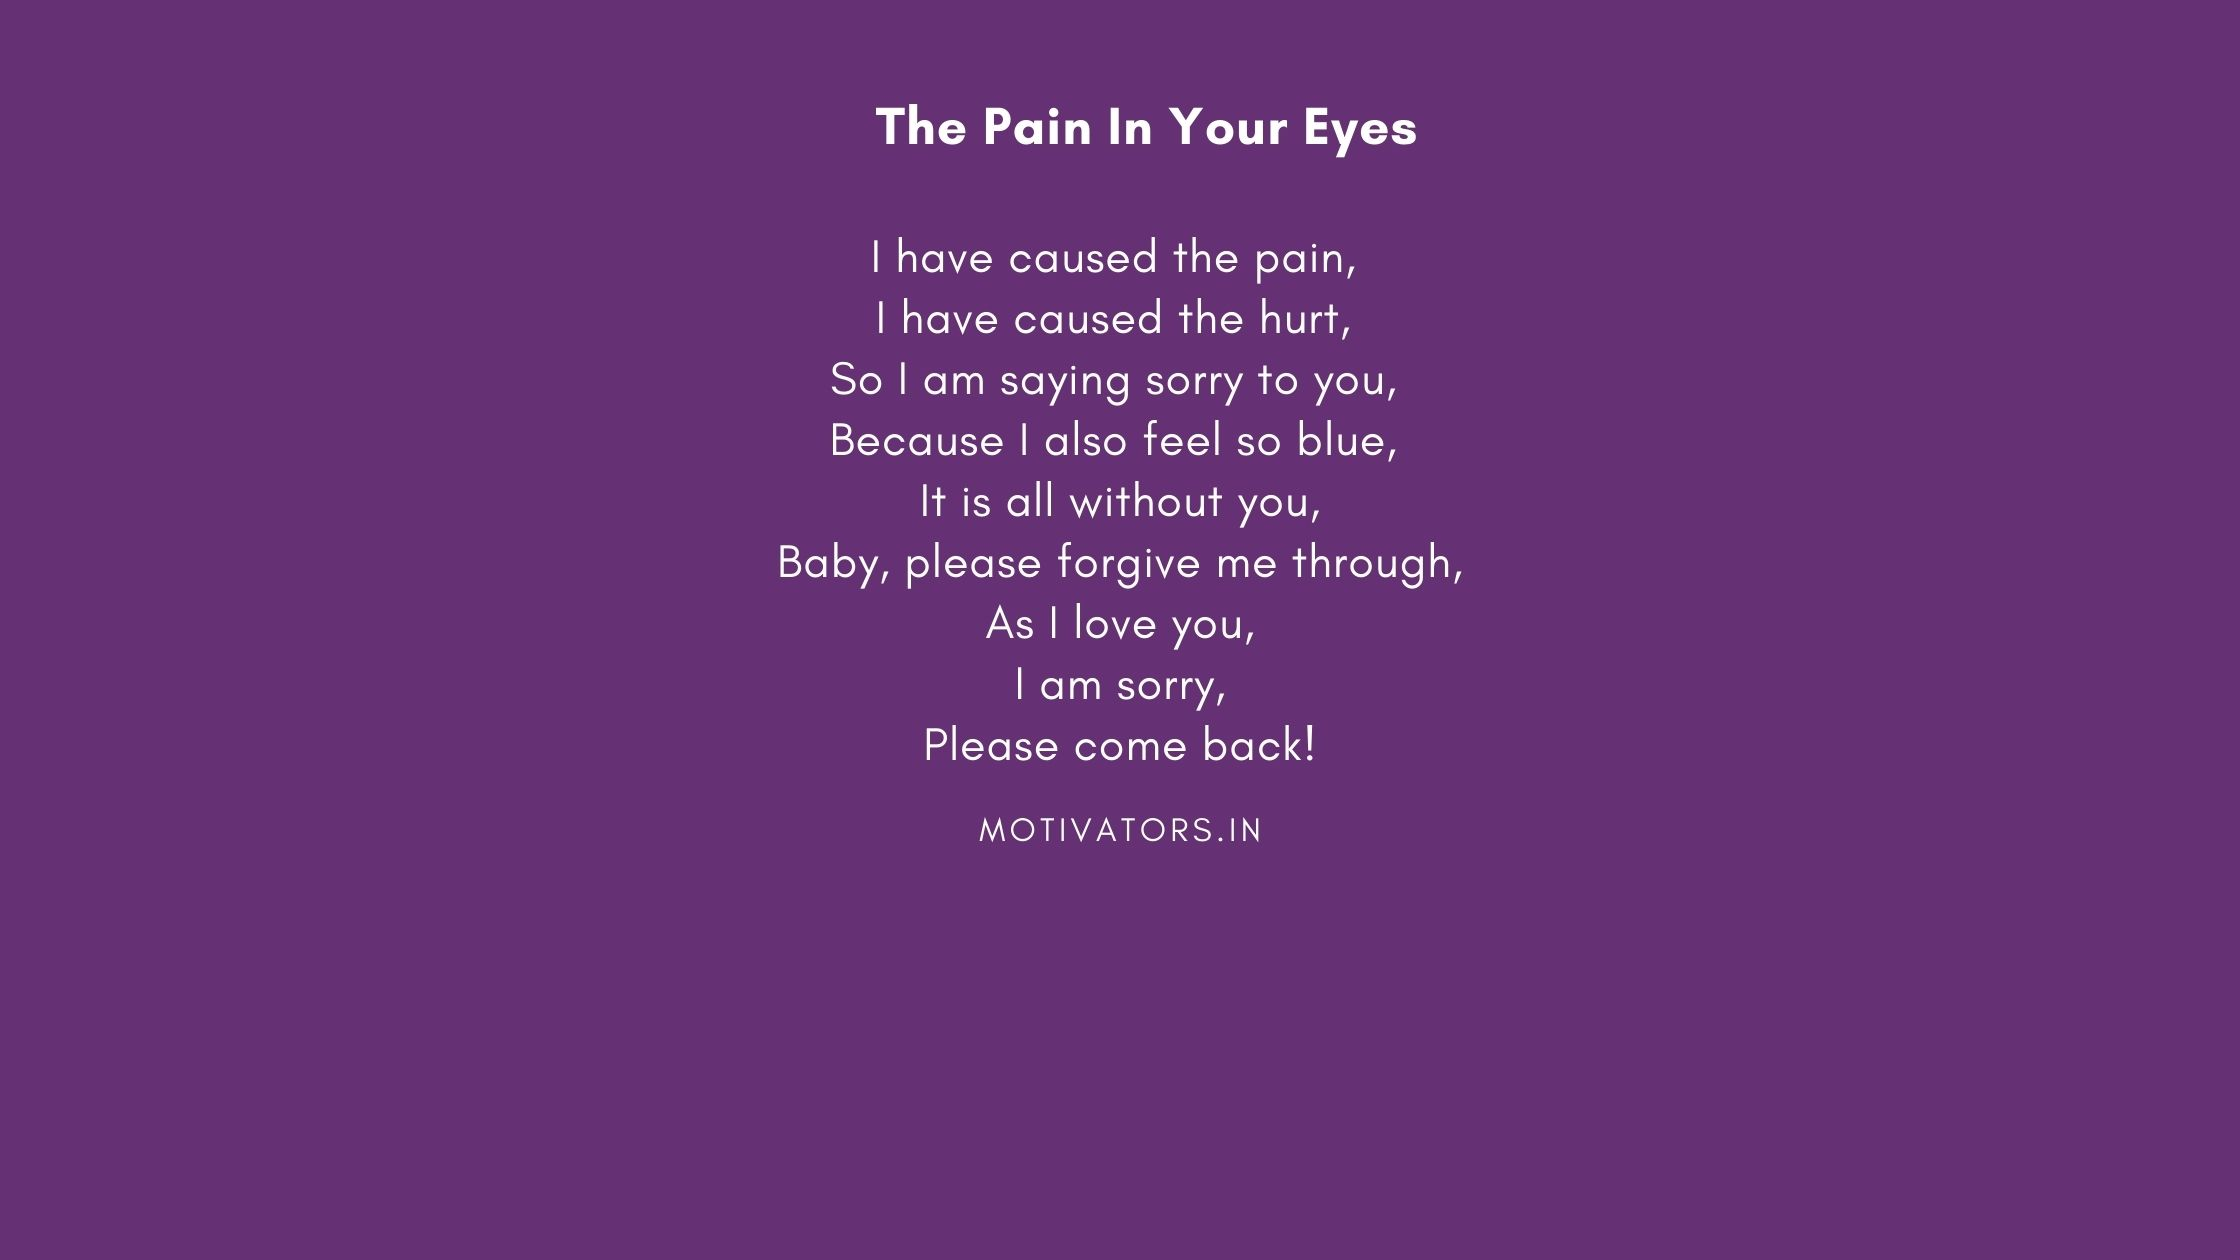 The Pain In Your Eyes